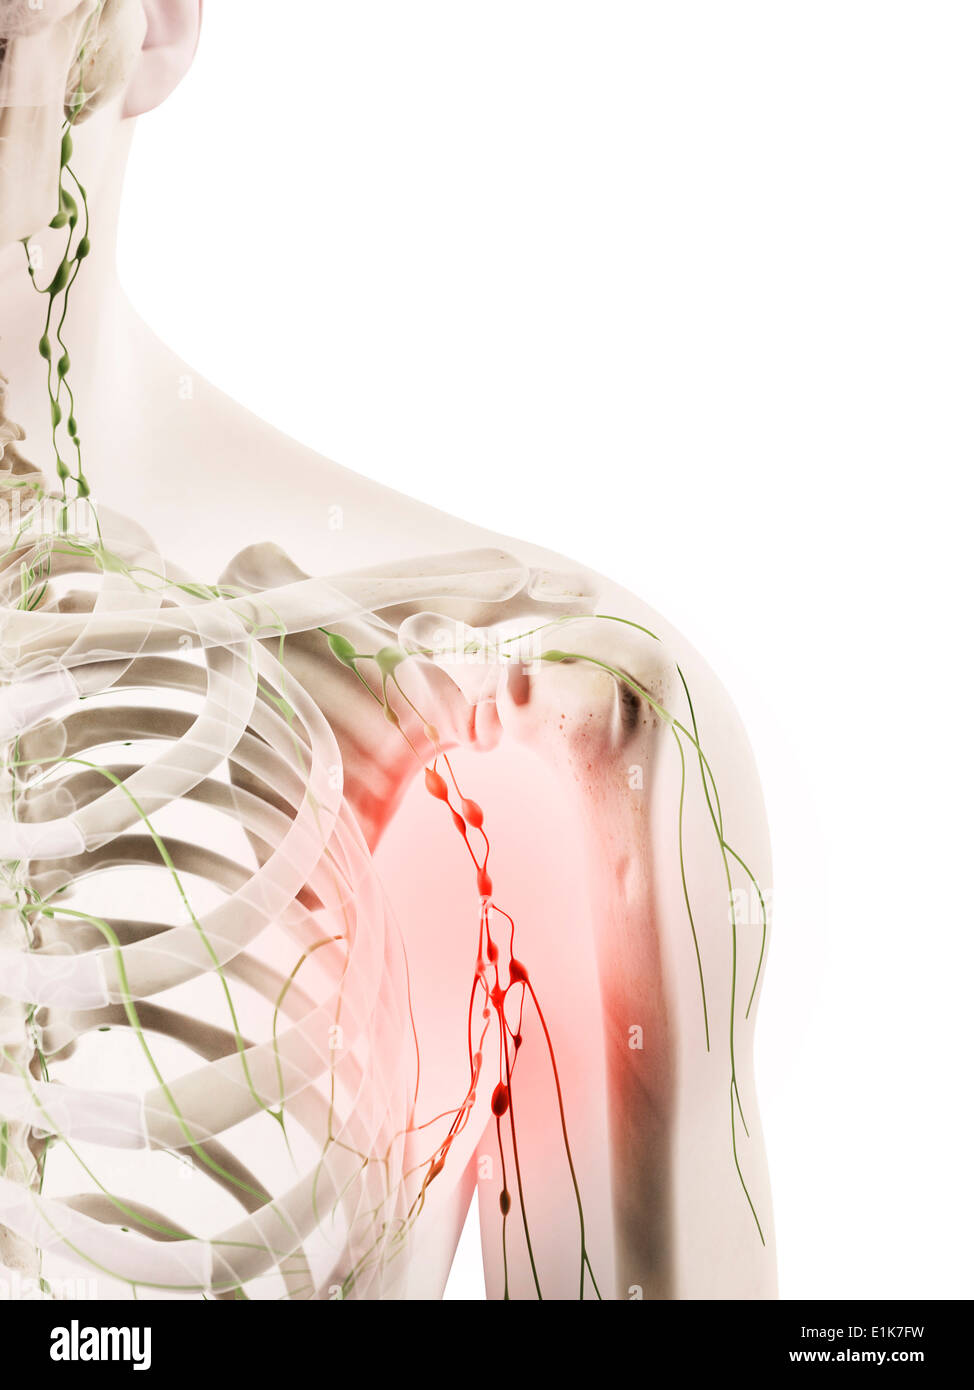 Inflamed Lymph Nodes Stock Photos Inflamed Lymph Nodes Stock